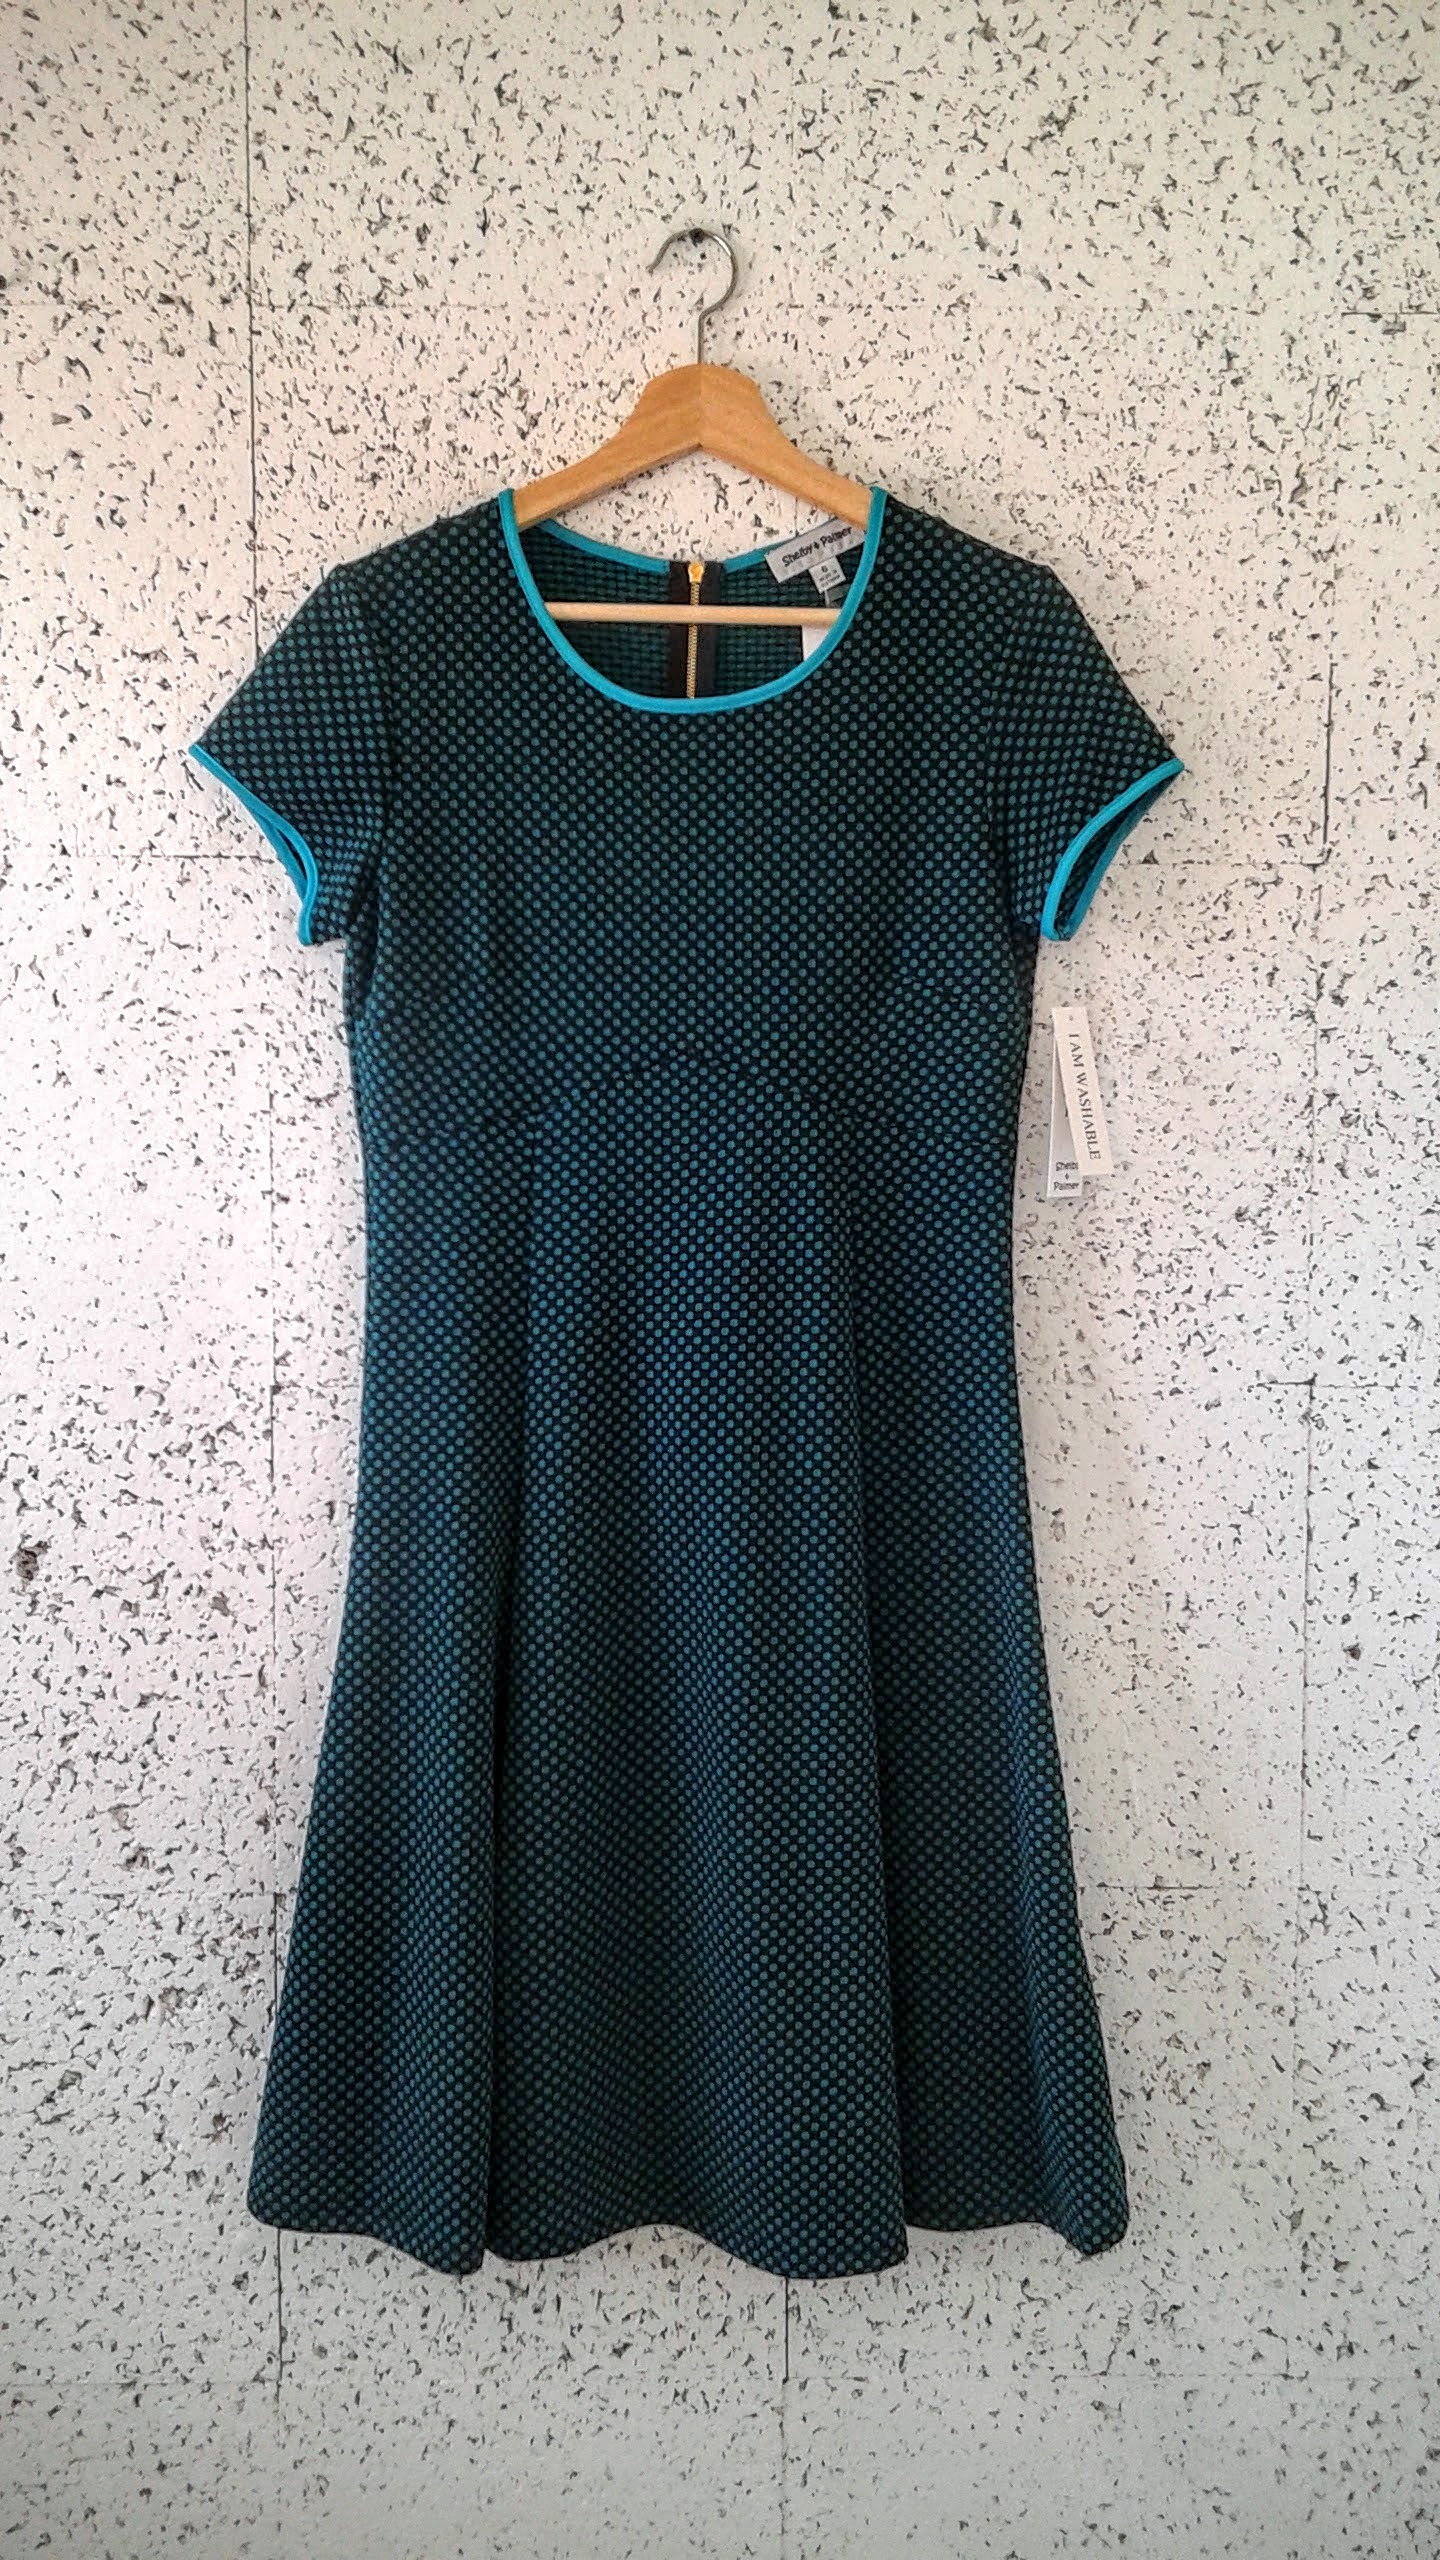 Shelby & Palmer dress (NWT); Size 6, $36